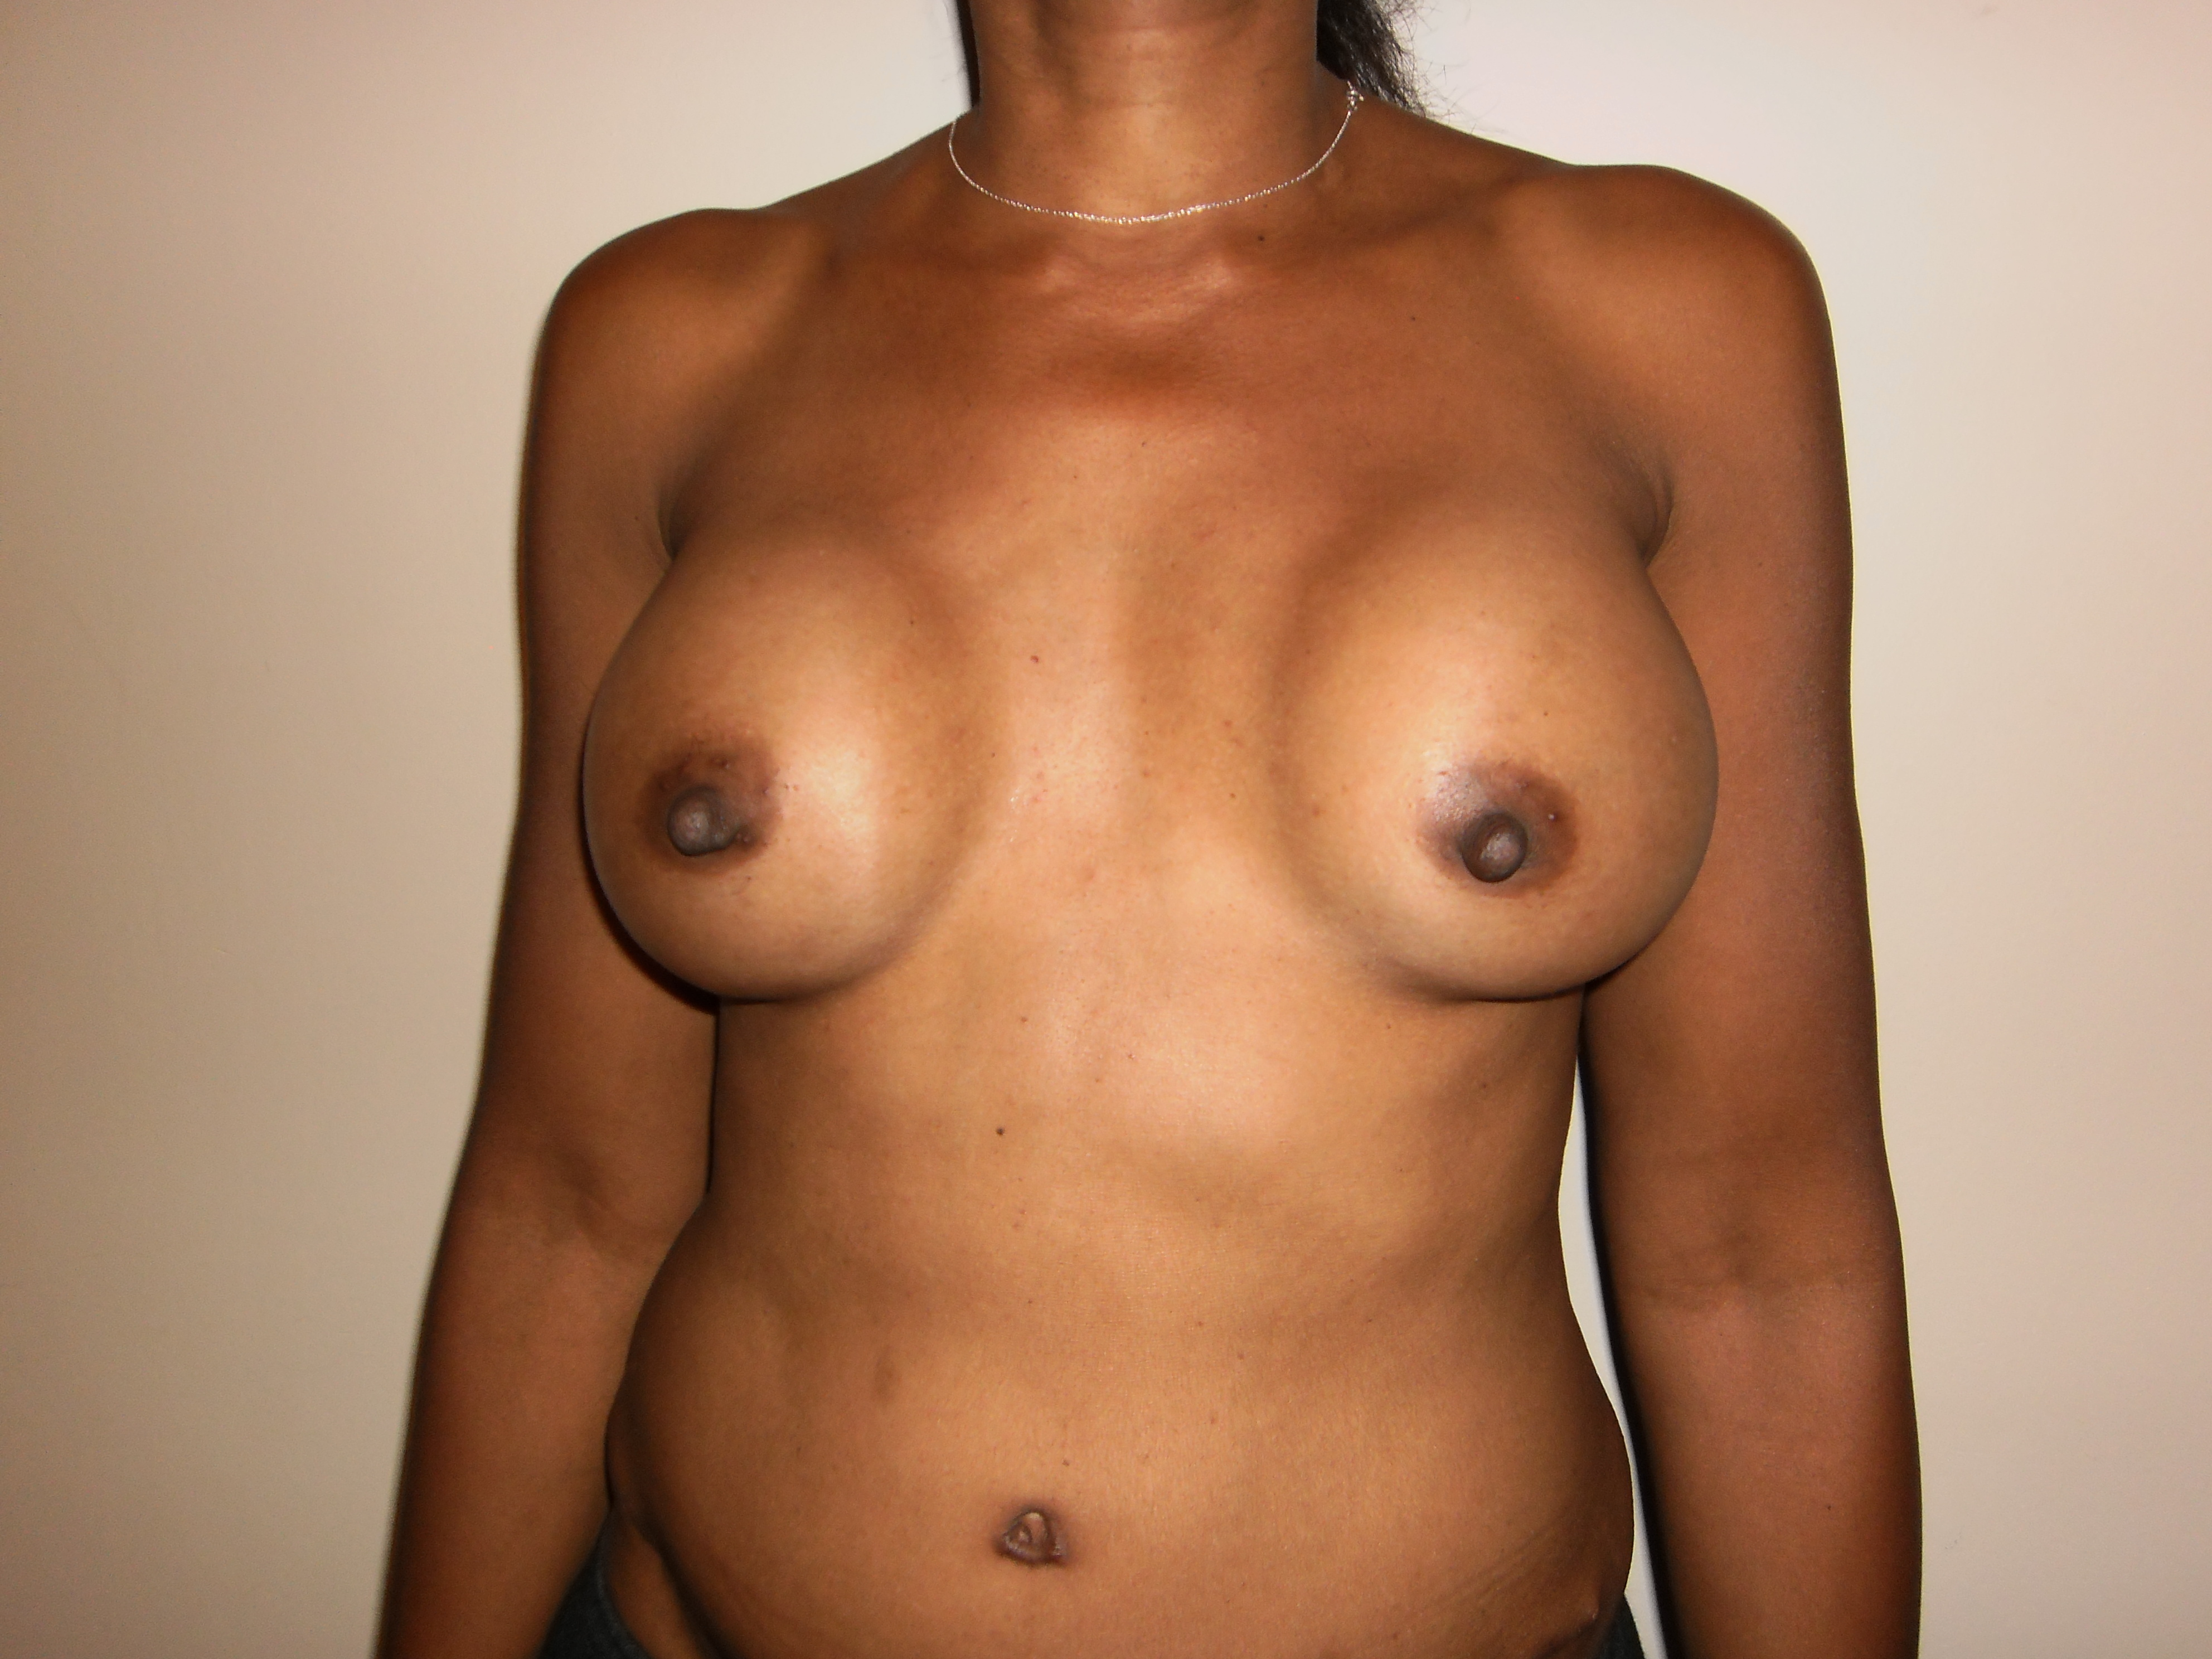 breast reduction and band jpg 853x1280